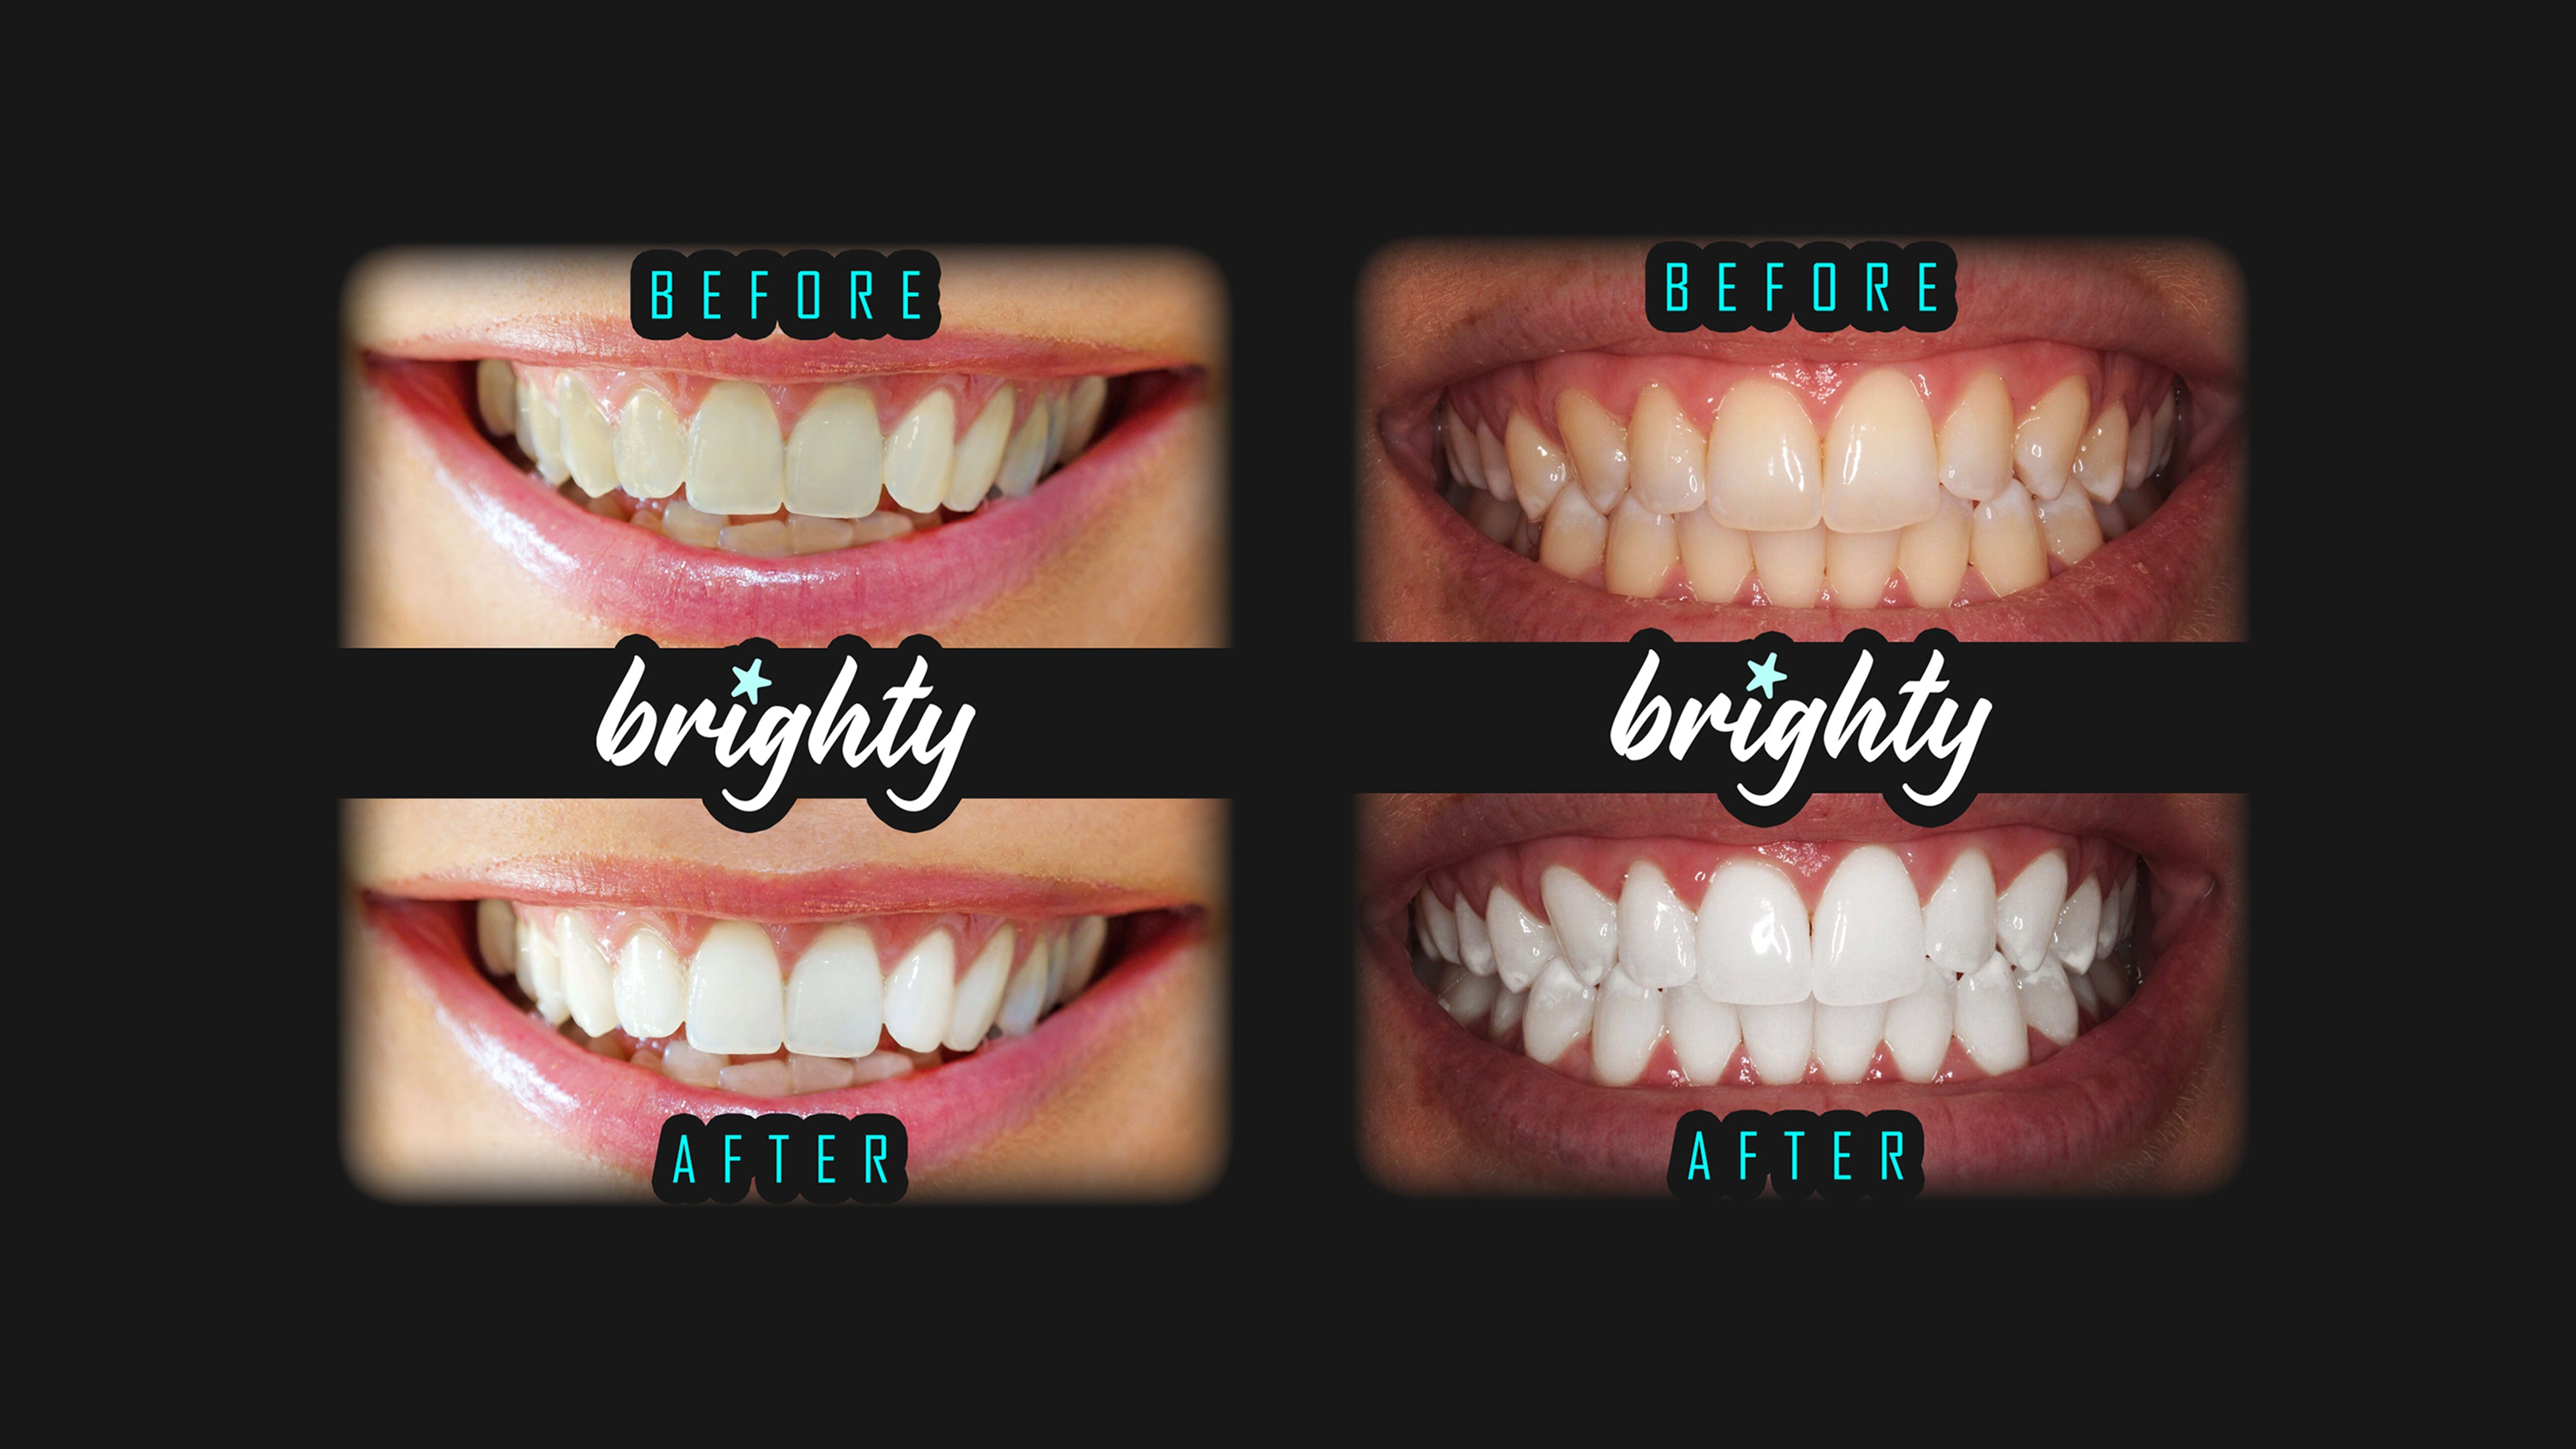 Brighty™ Teeth Whitening | Before & After Examples - Pictures